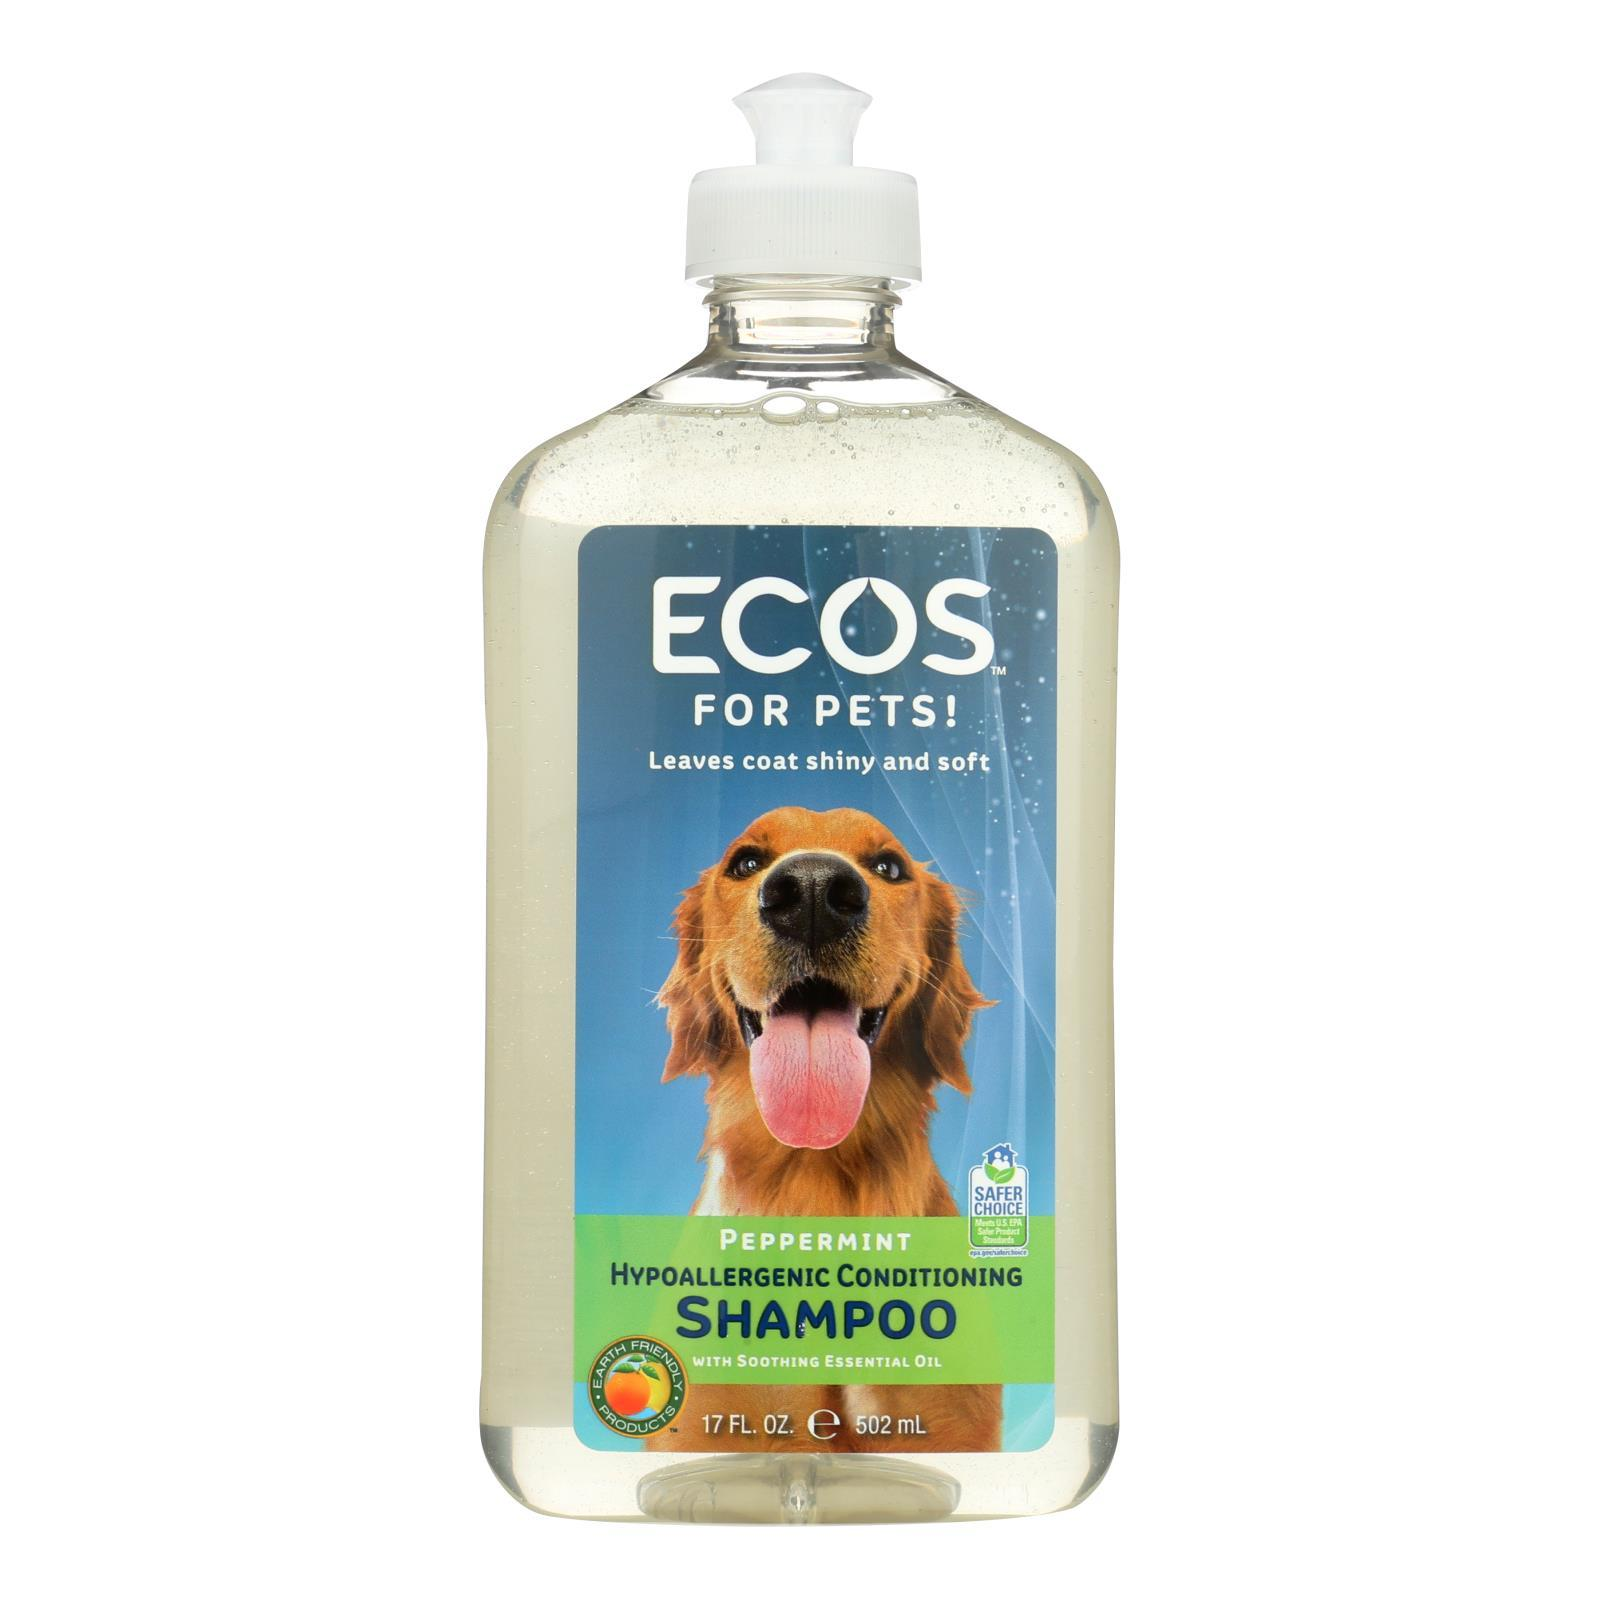 Ecos - Hypoallergenic Conditioning Pet Shampoo - Peppermint - 17 Fl Oz. - BeeGreen